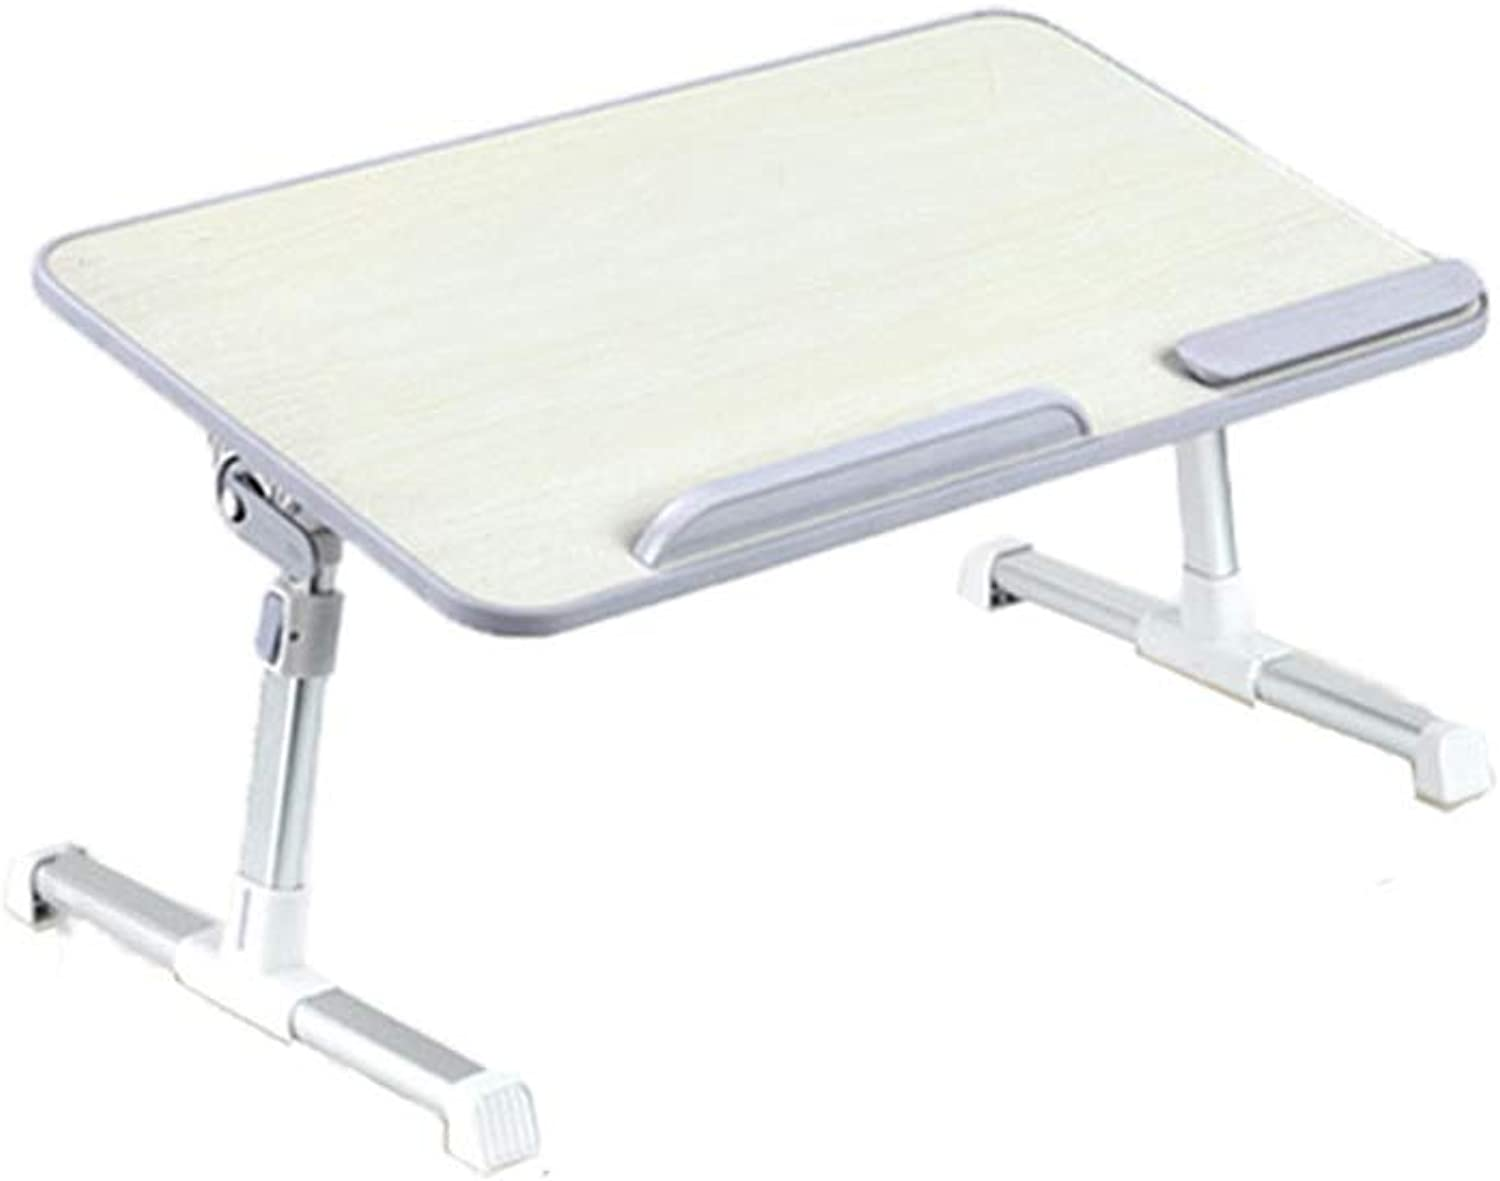 DUXX Desk, Bed Desk Can Be Raised and Lowered, Adjustable Small Table, Lazy, Learning, Folding Computer Desk Computer Stand (color   C)